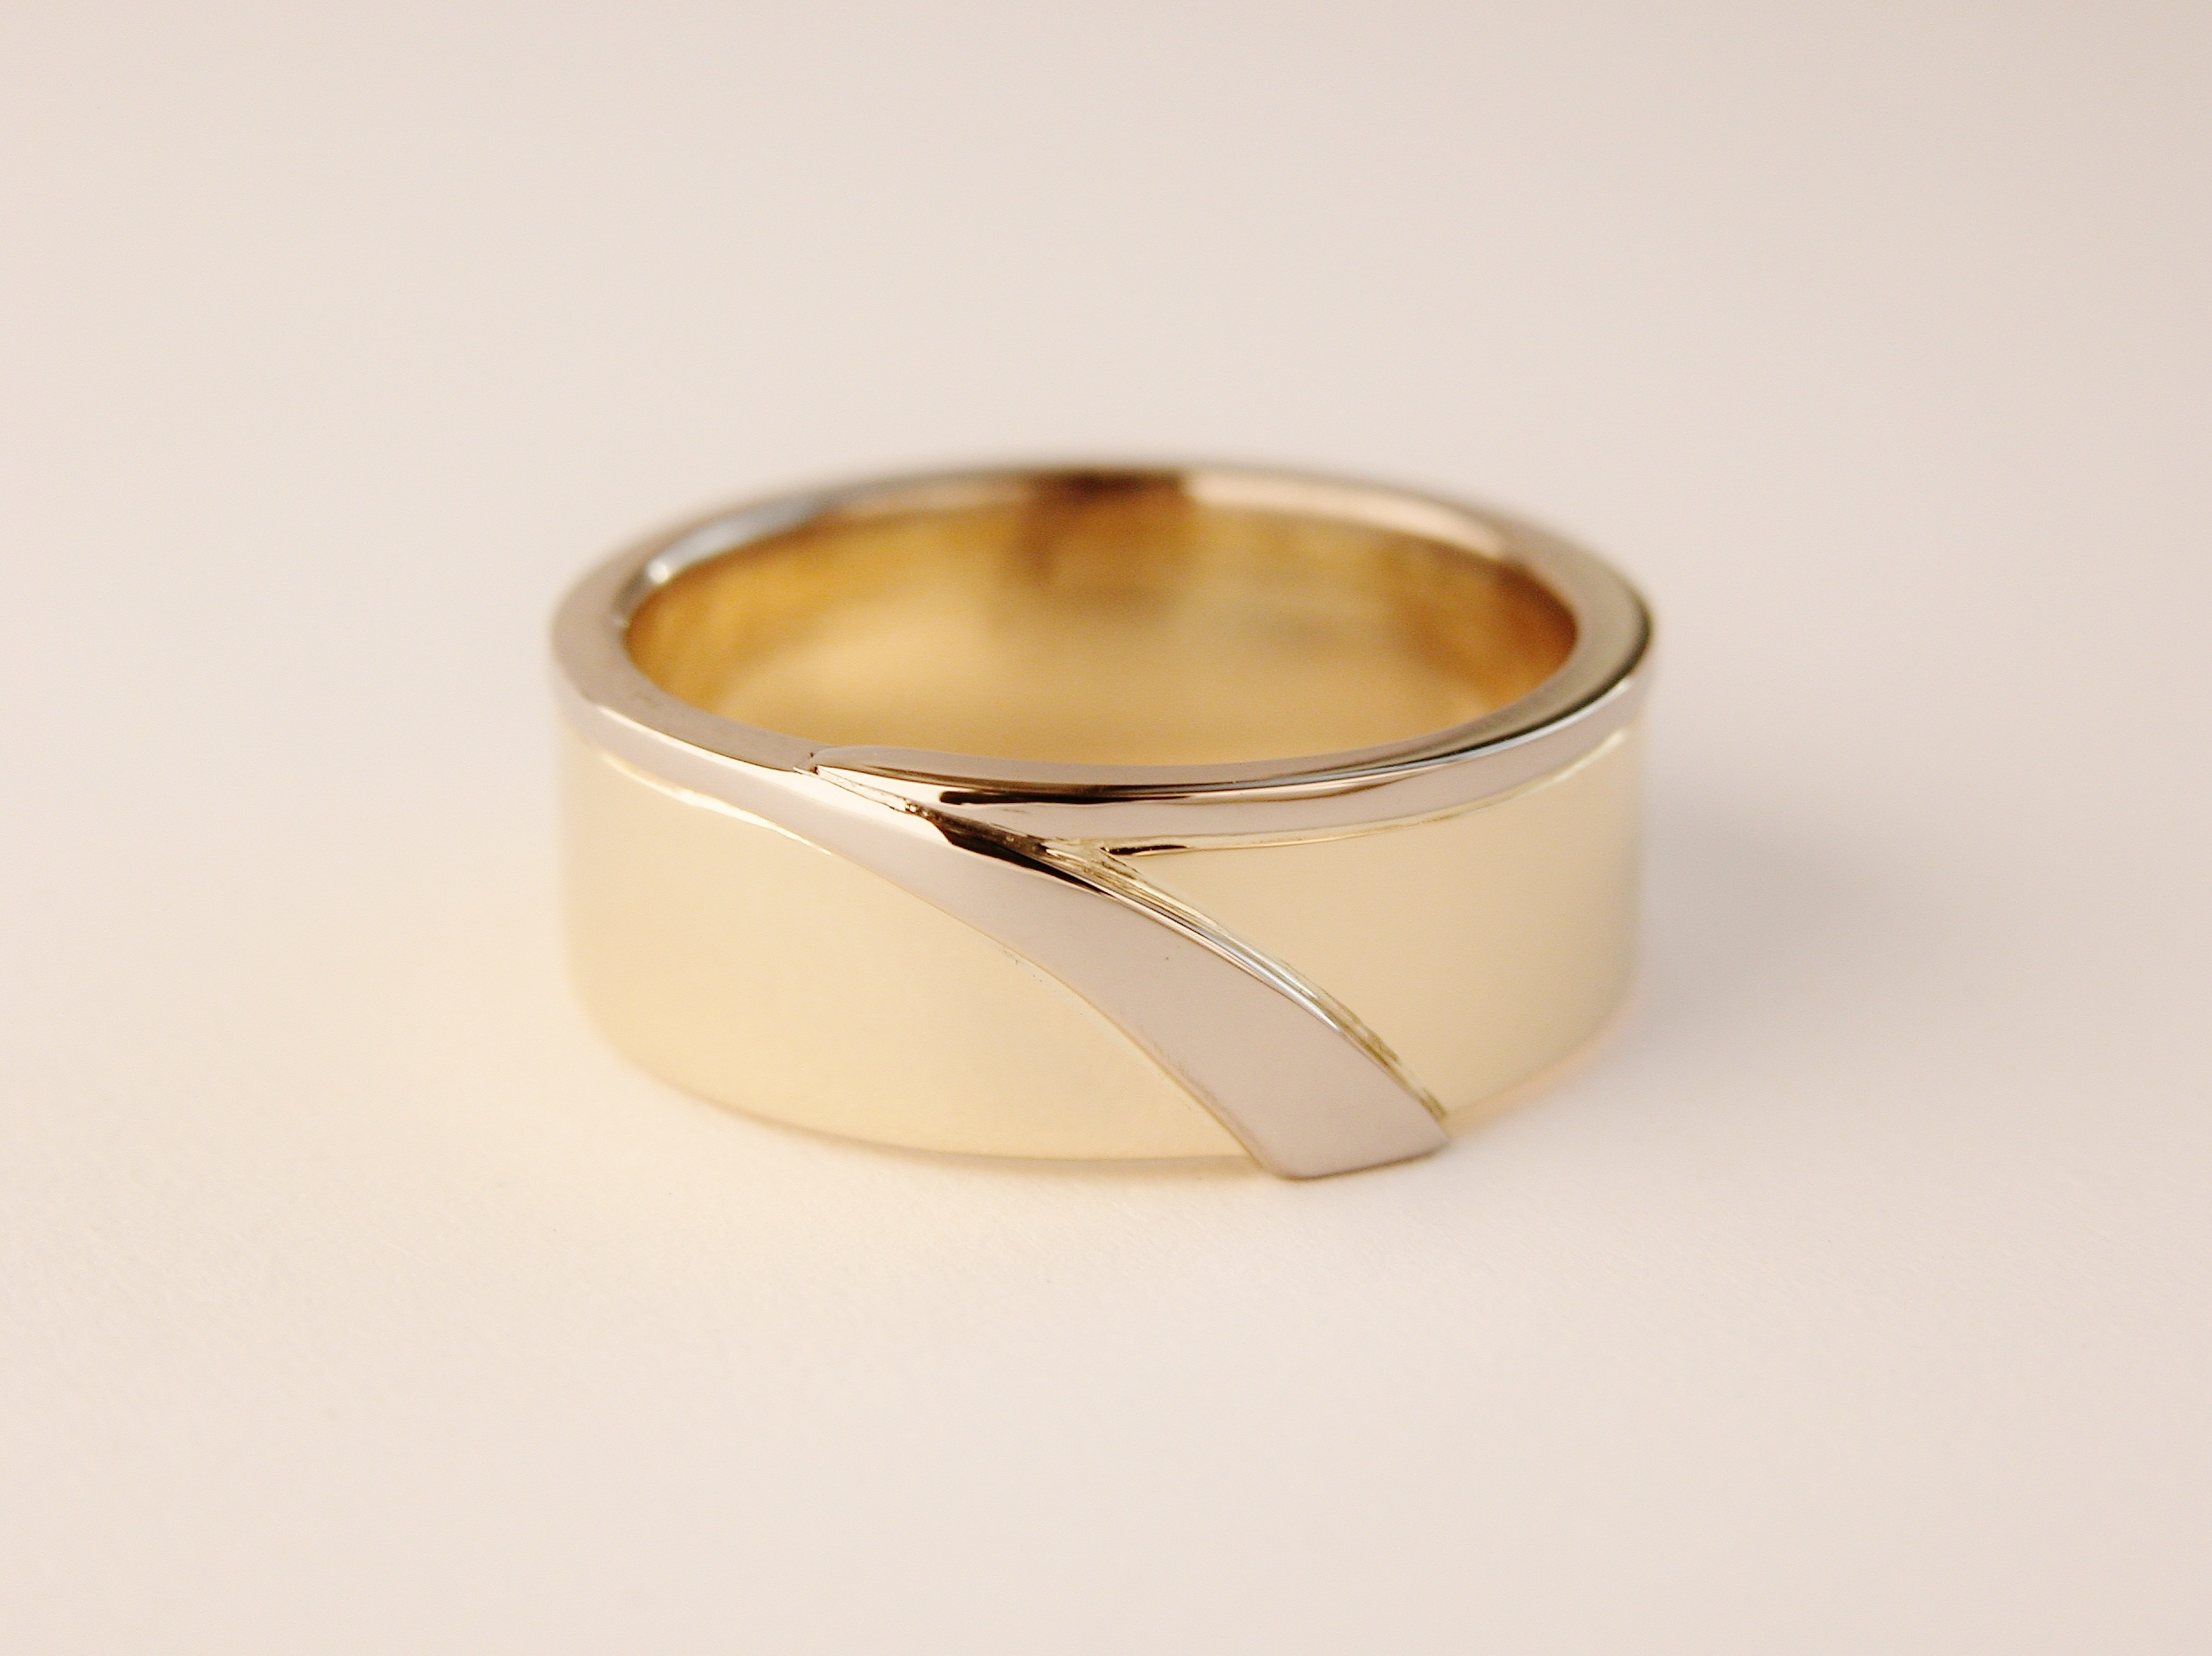 18ct. yellow gold Gents wedding ring with platinum wire attached around 1 edge extending to an inlayed flare.